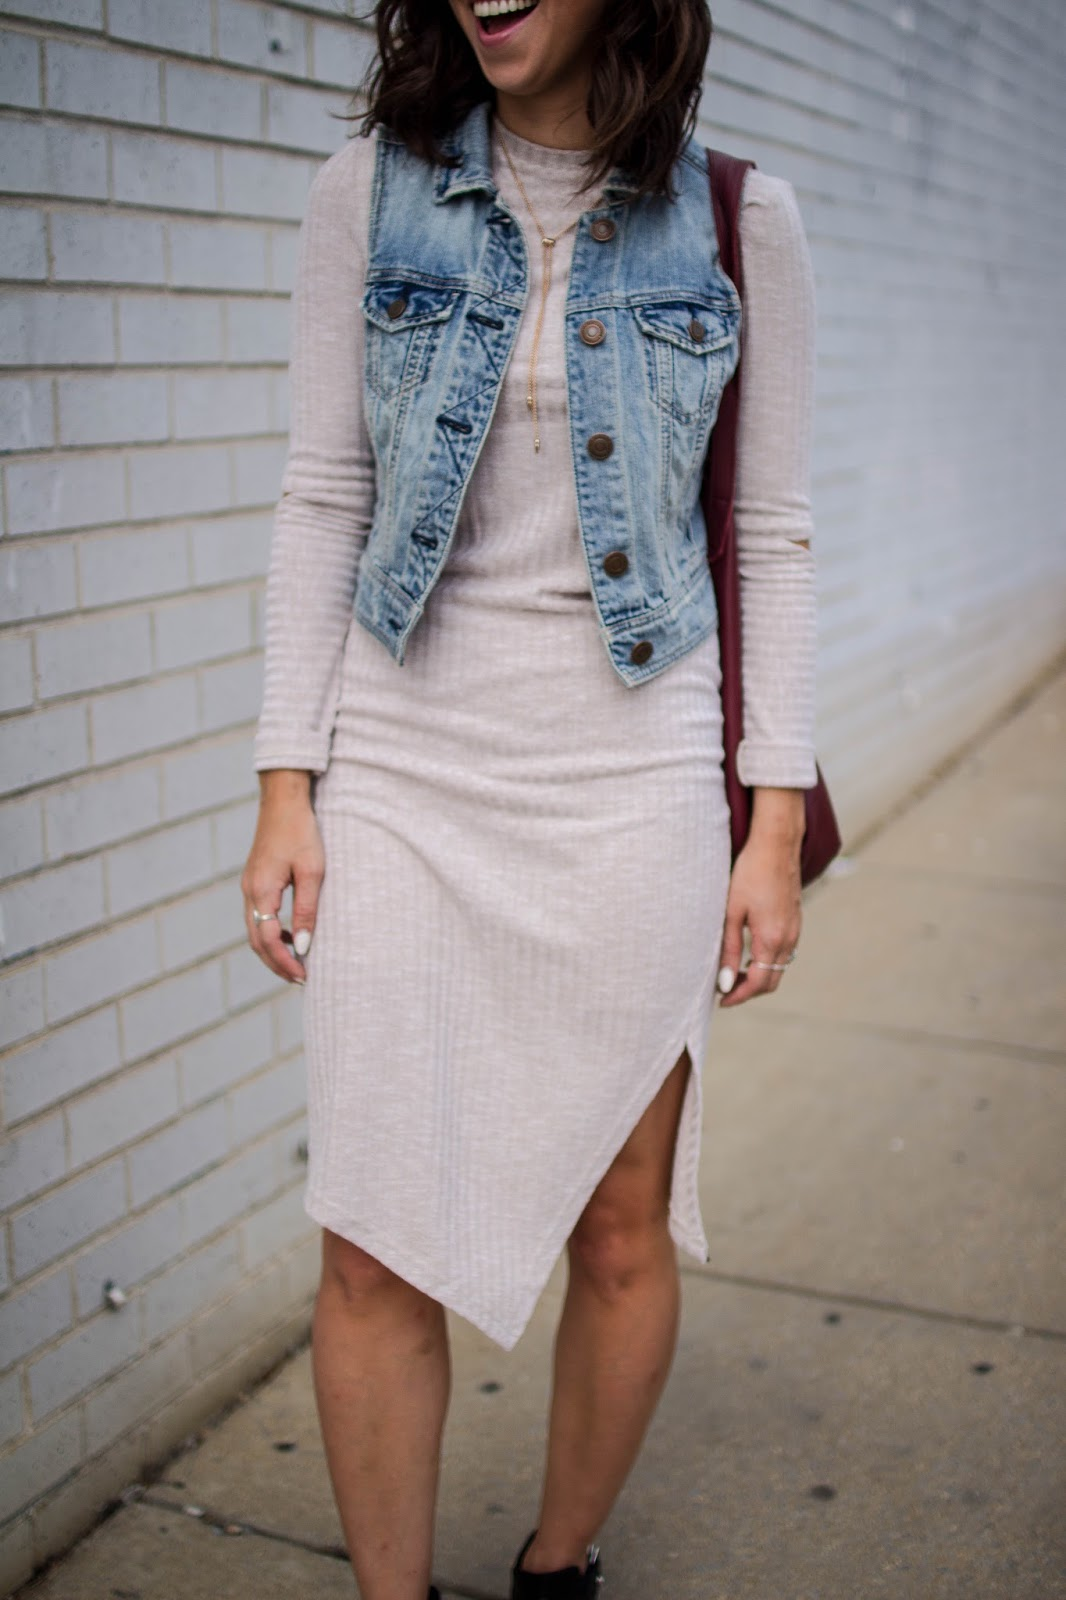 How to wear a casual bodycon dress for fall. | A.Viza Style | the fifth knit dress - denim vest - dc blogger -ragbone booties - fall layering